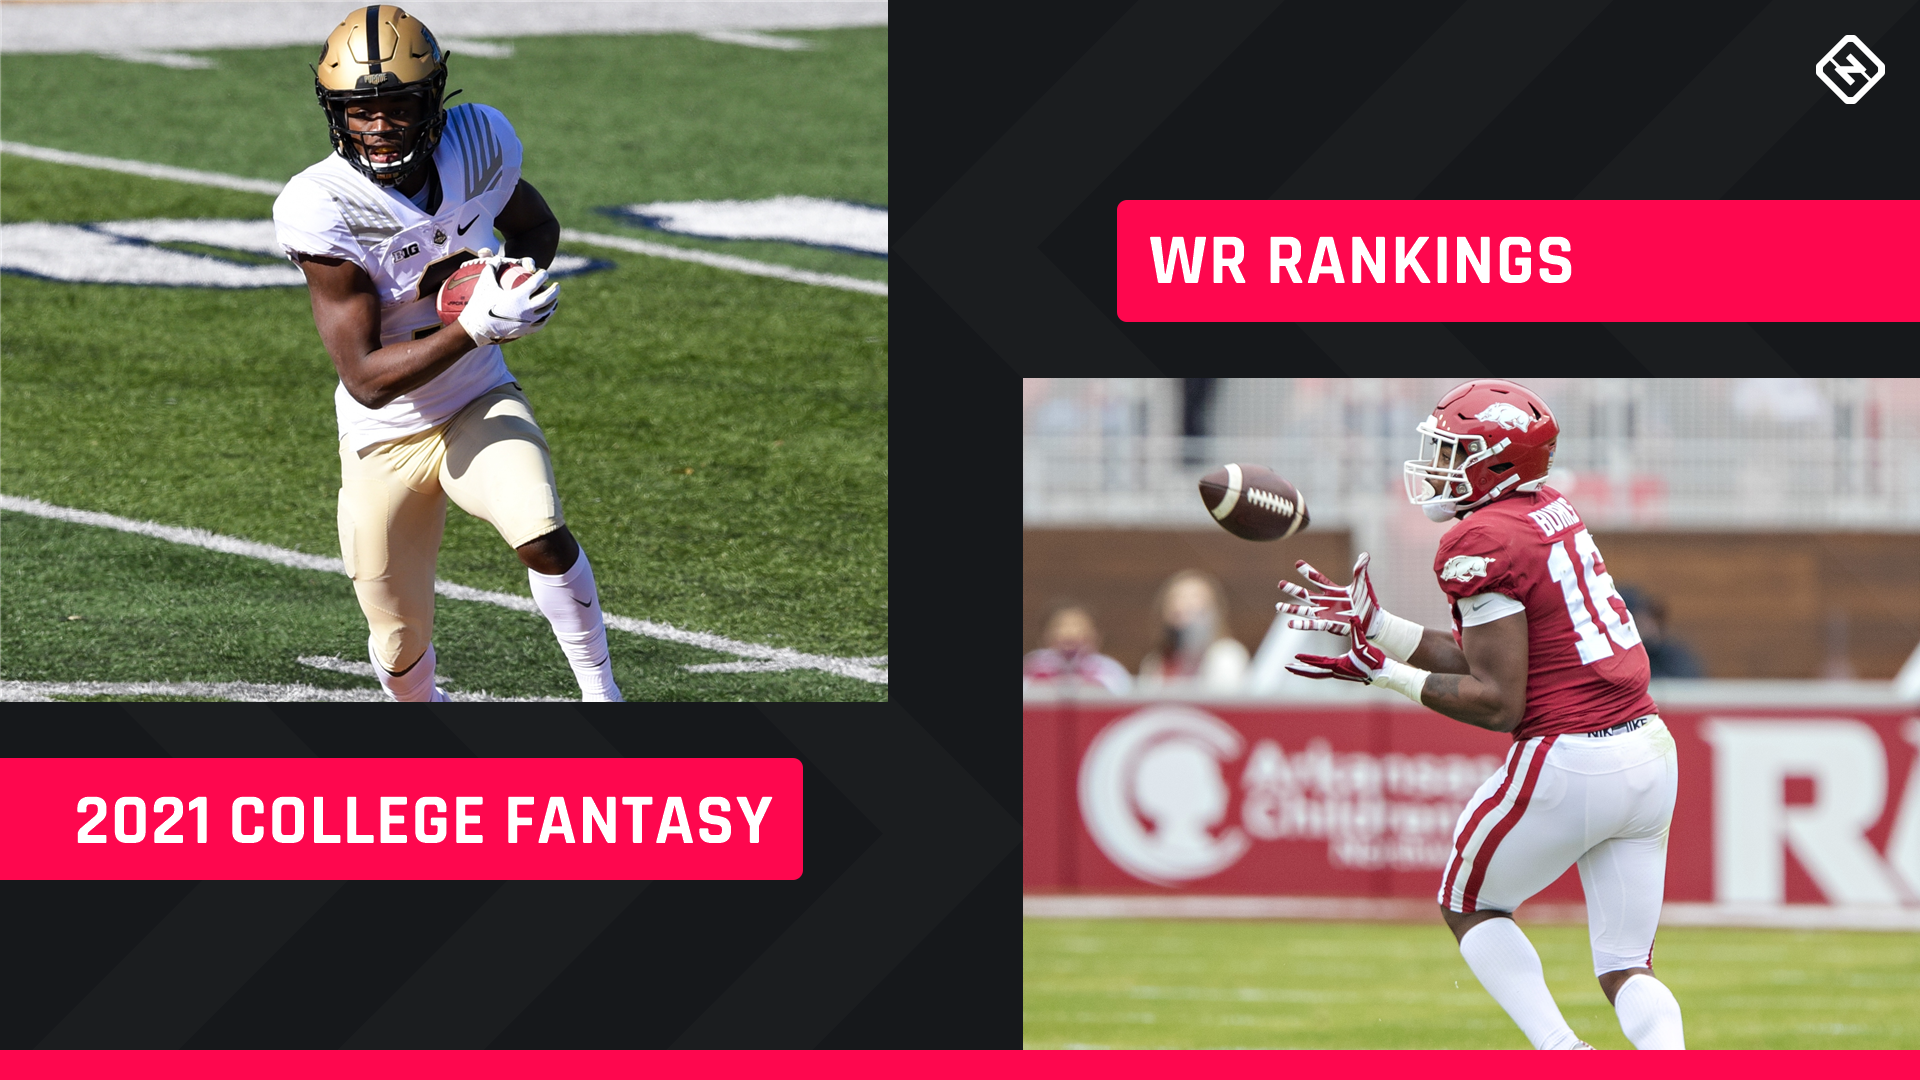 College Fantasy Football WR Rankings 2021: Top wide receivers, sleepers to know